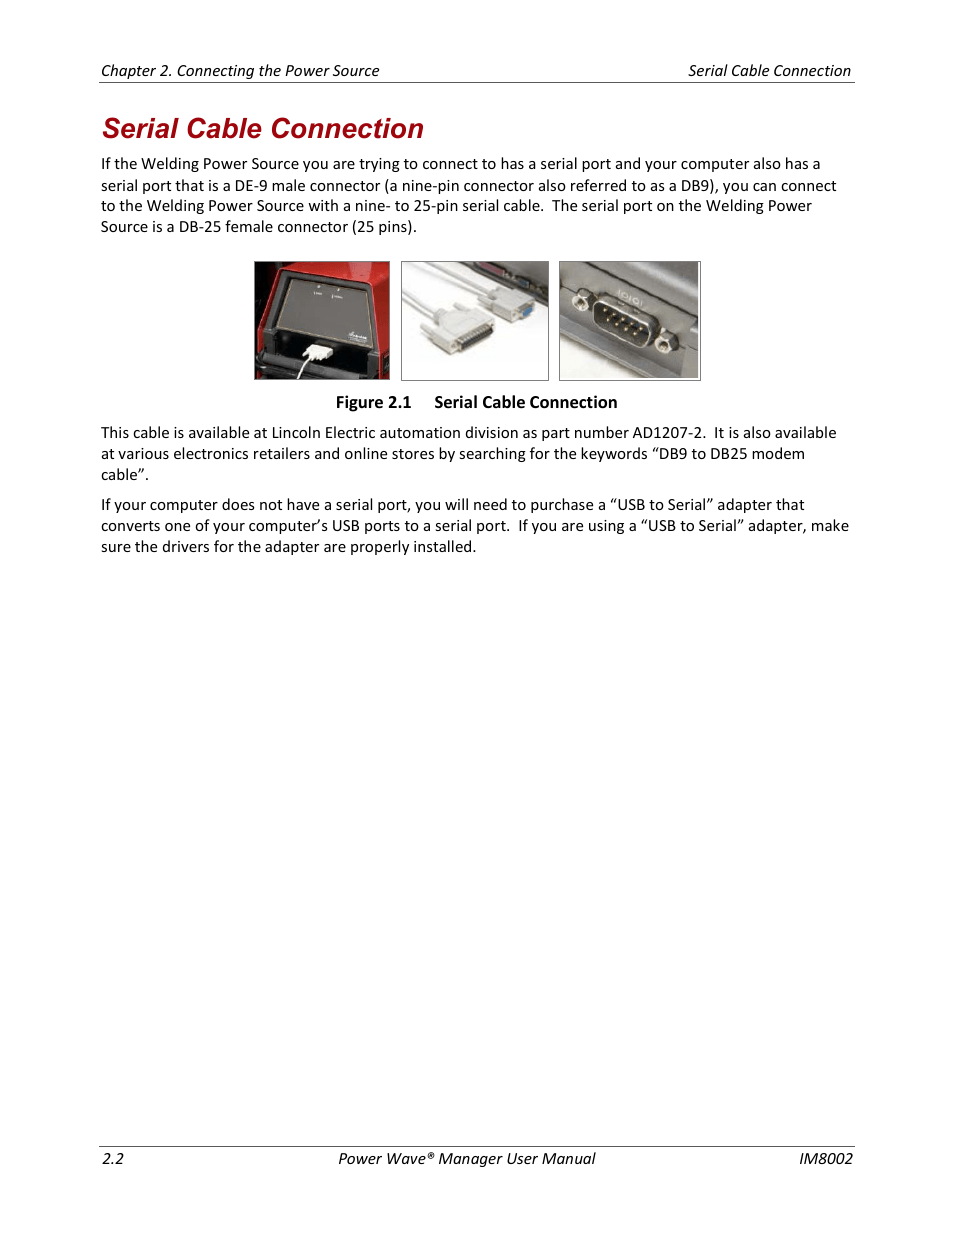 medium resolution of serial cable connection lincoln electric im8002 power wave manager user manual page 18 128